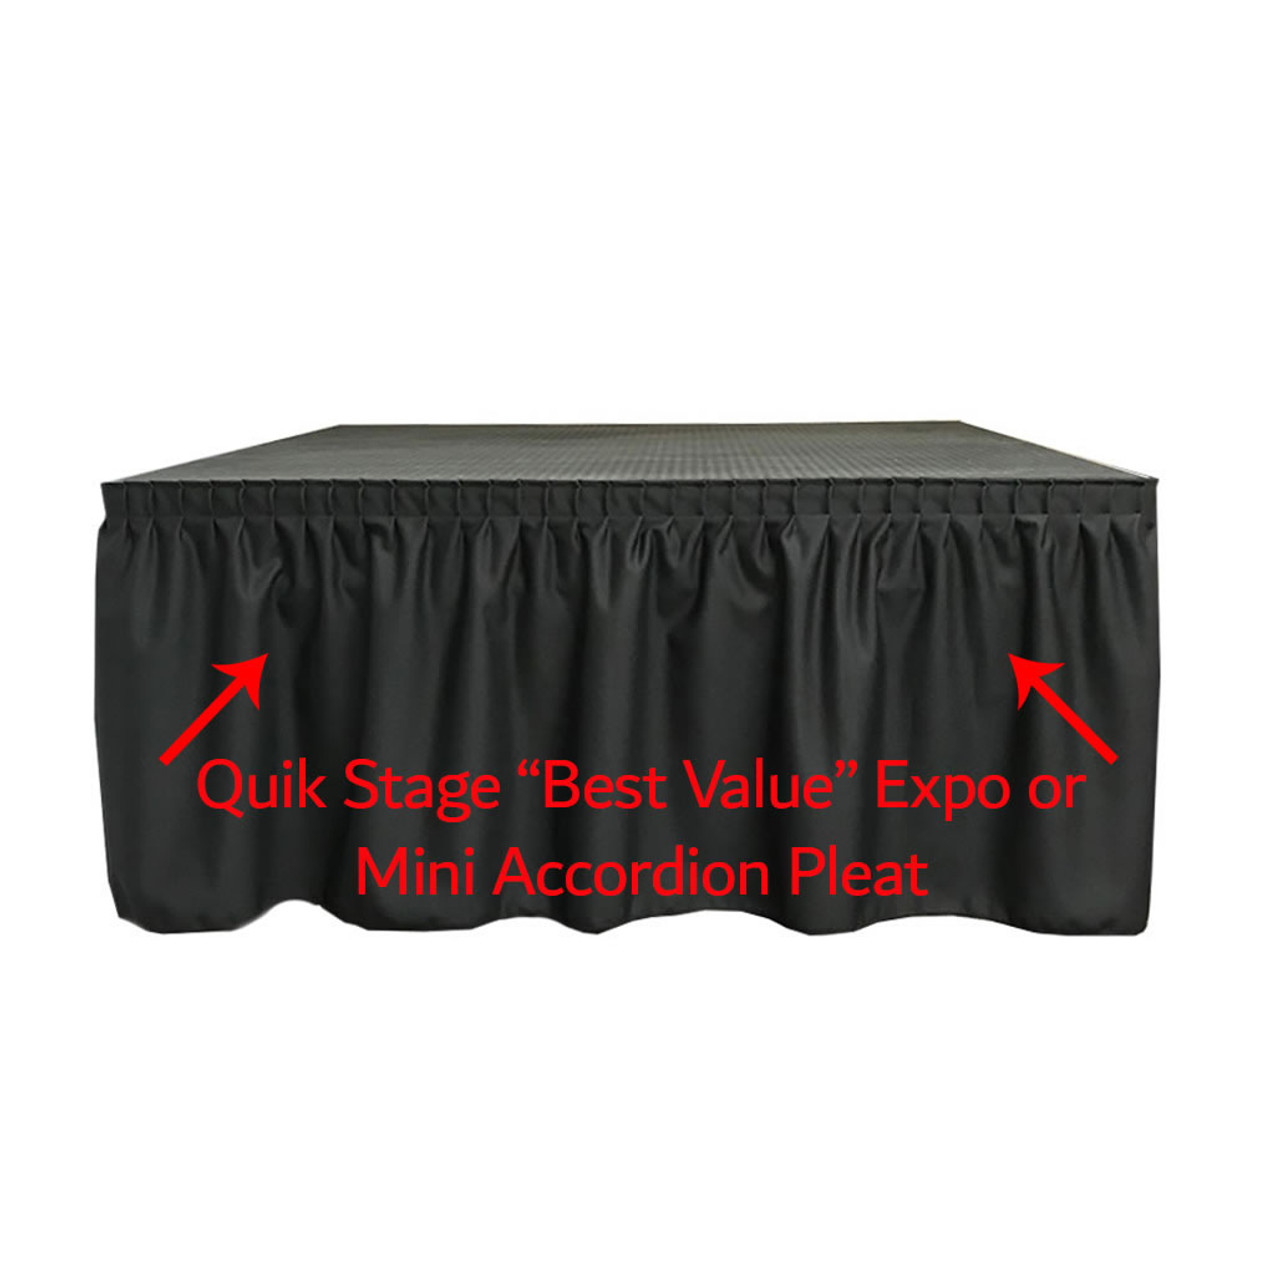 High Quality Quik Stage 8' x 8' High Portable Stage Package with Black Polyvinyl Non-Skid Surface. Additional Heights and Surfaces Available - Best Value Expo Pleat Stage Skirting